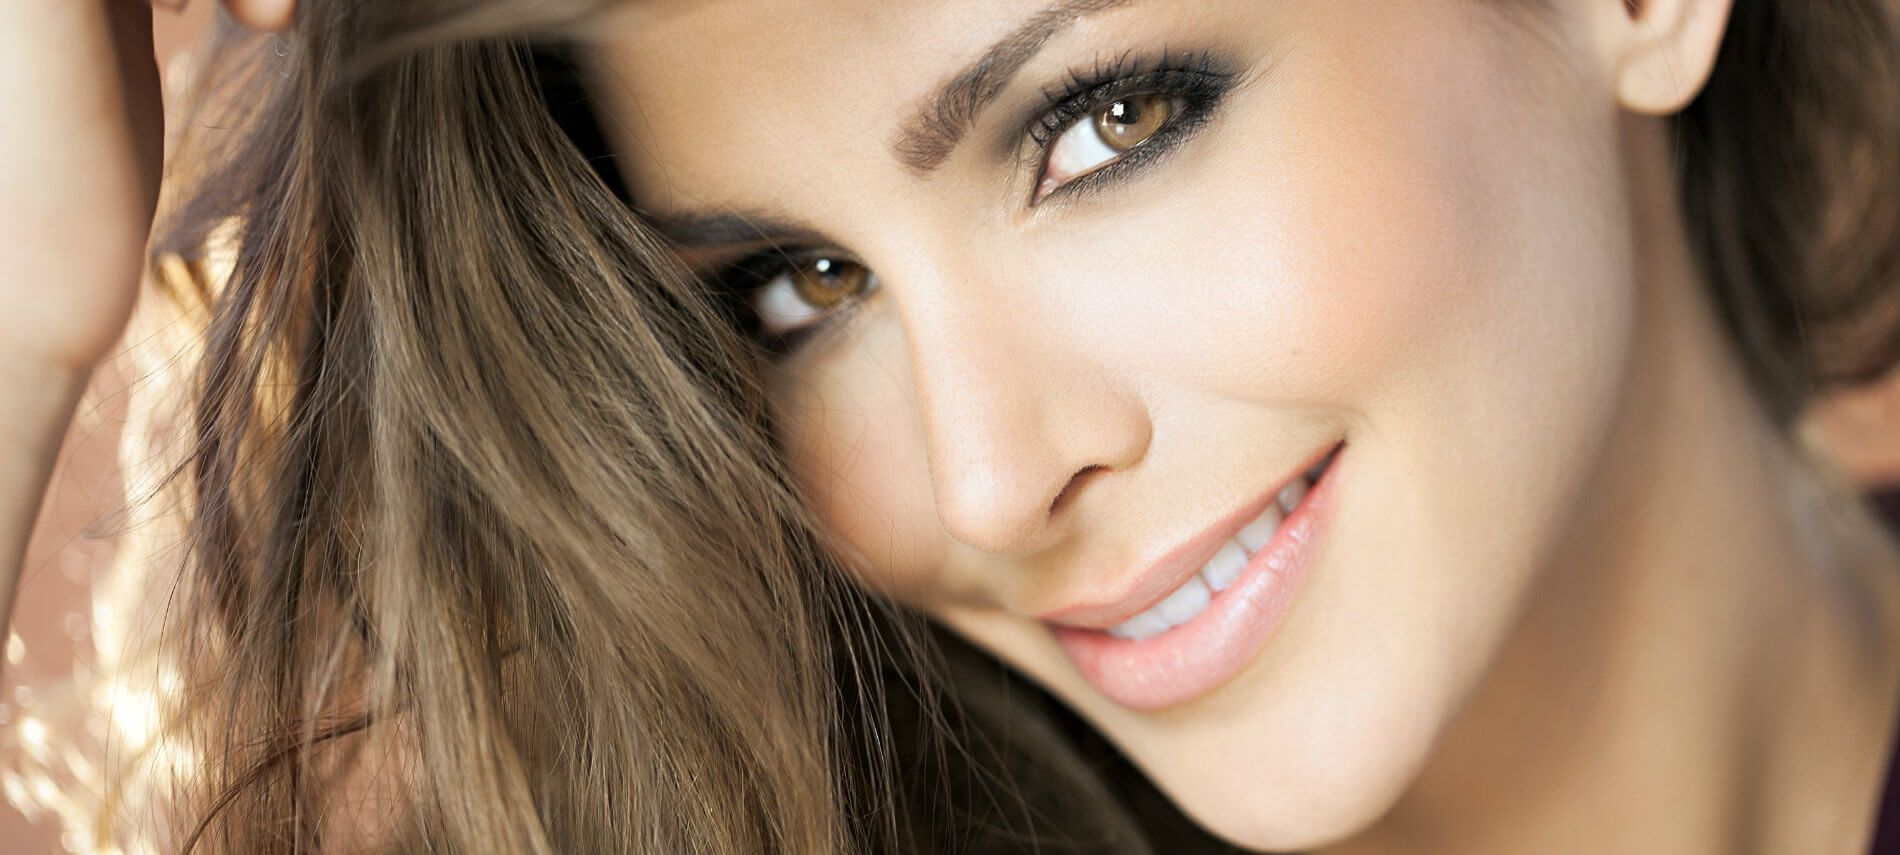 Laser Hair Removal and Electrolysis in Rhode Island